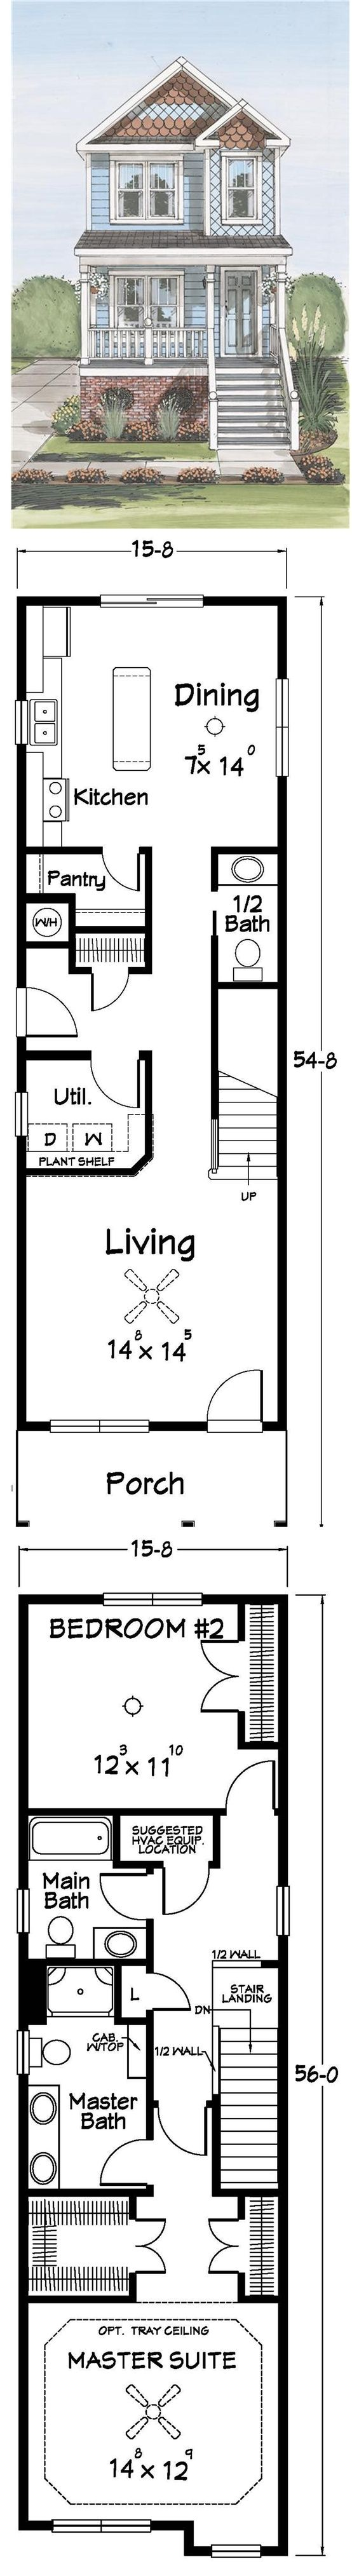 25 best ideas about narrow house plans on pinterest narrow house plans with rear garage luxury narrow lot